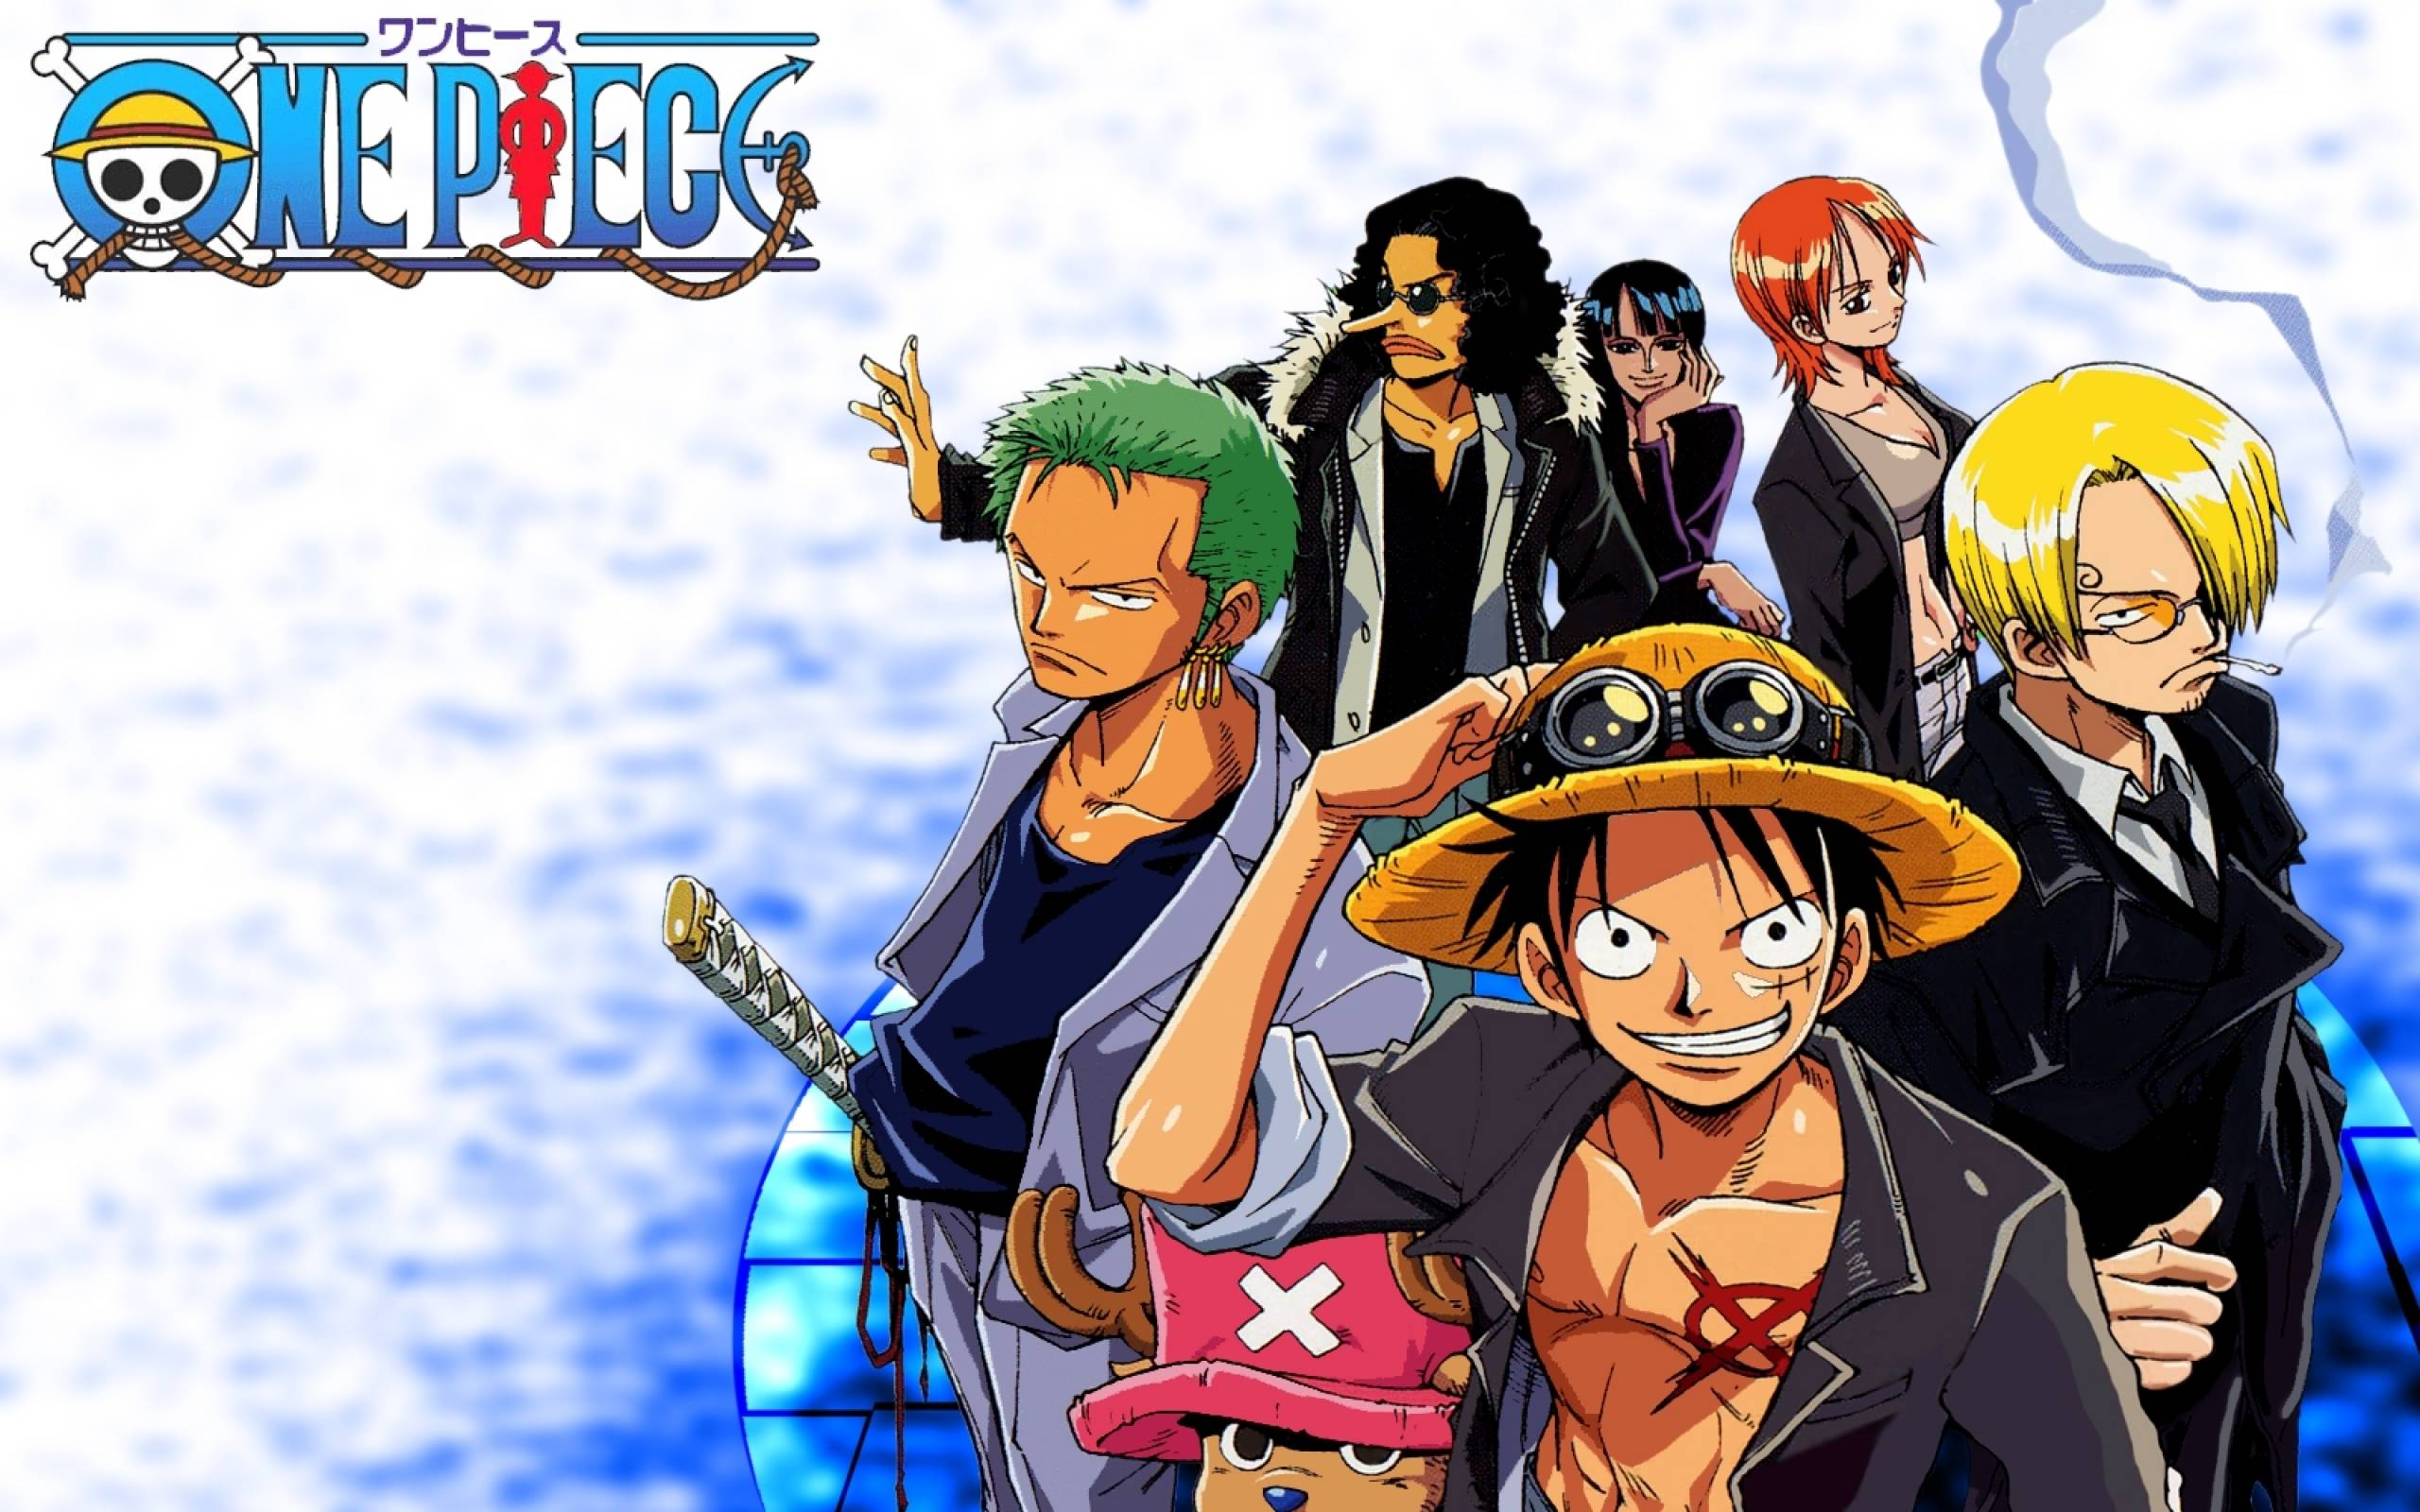 One Piece Wallpapers - Full HD wallpaper search - page 3